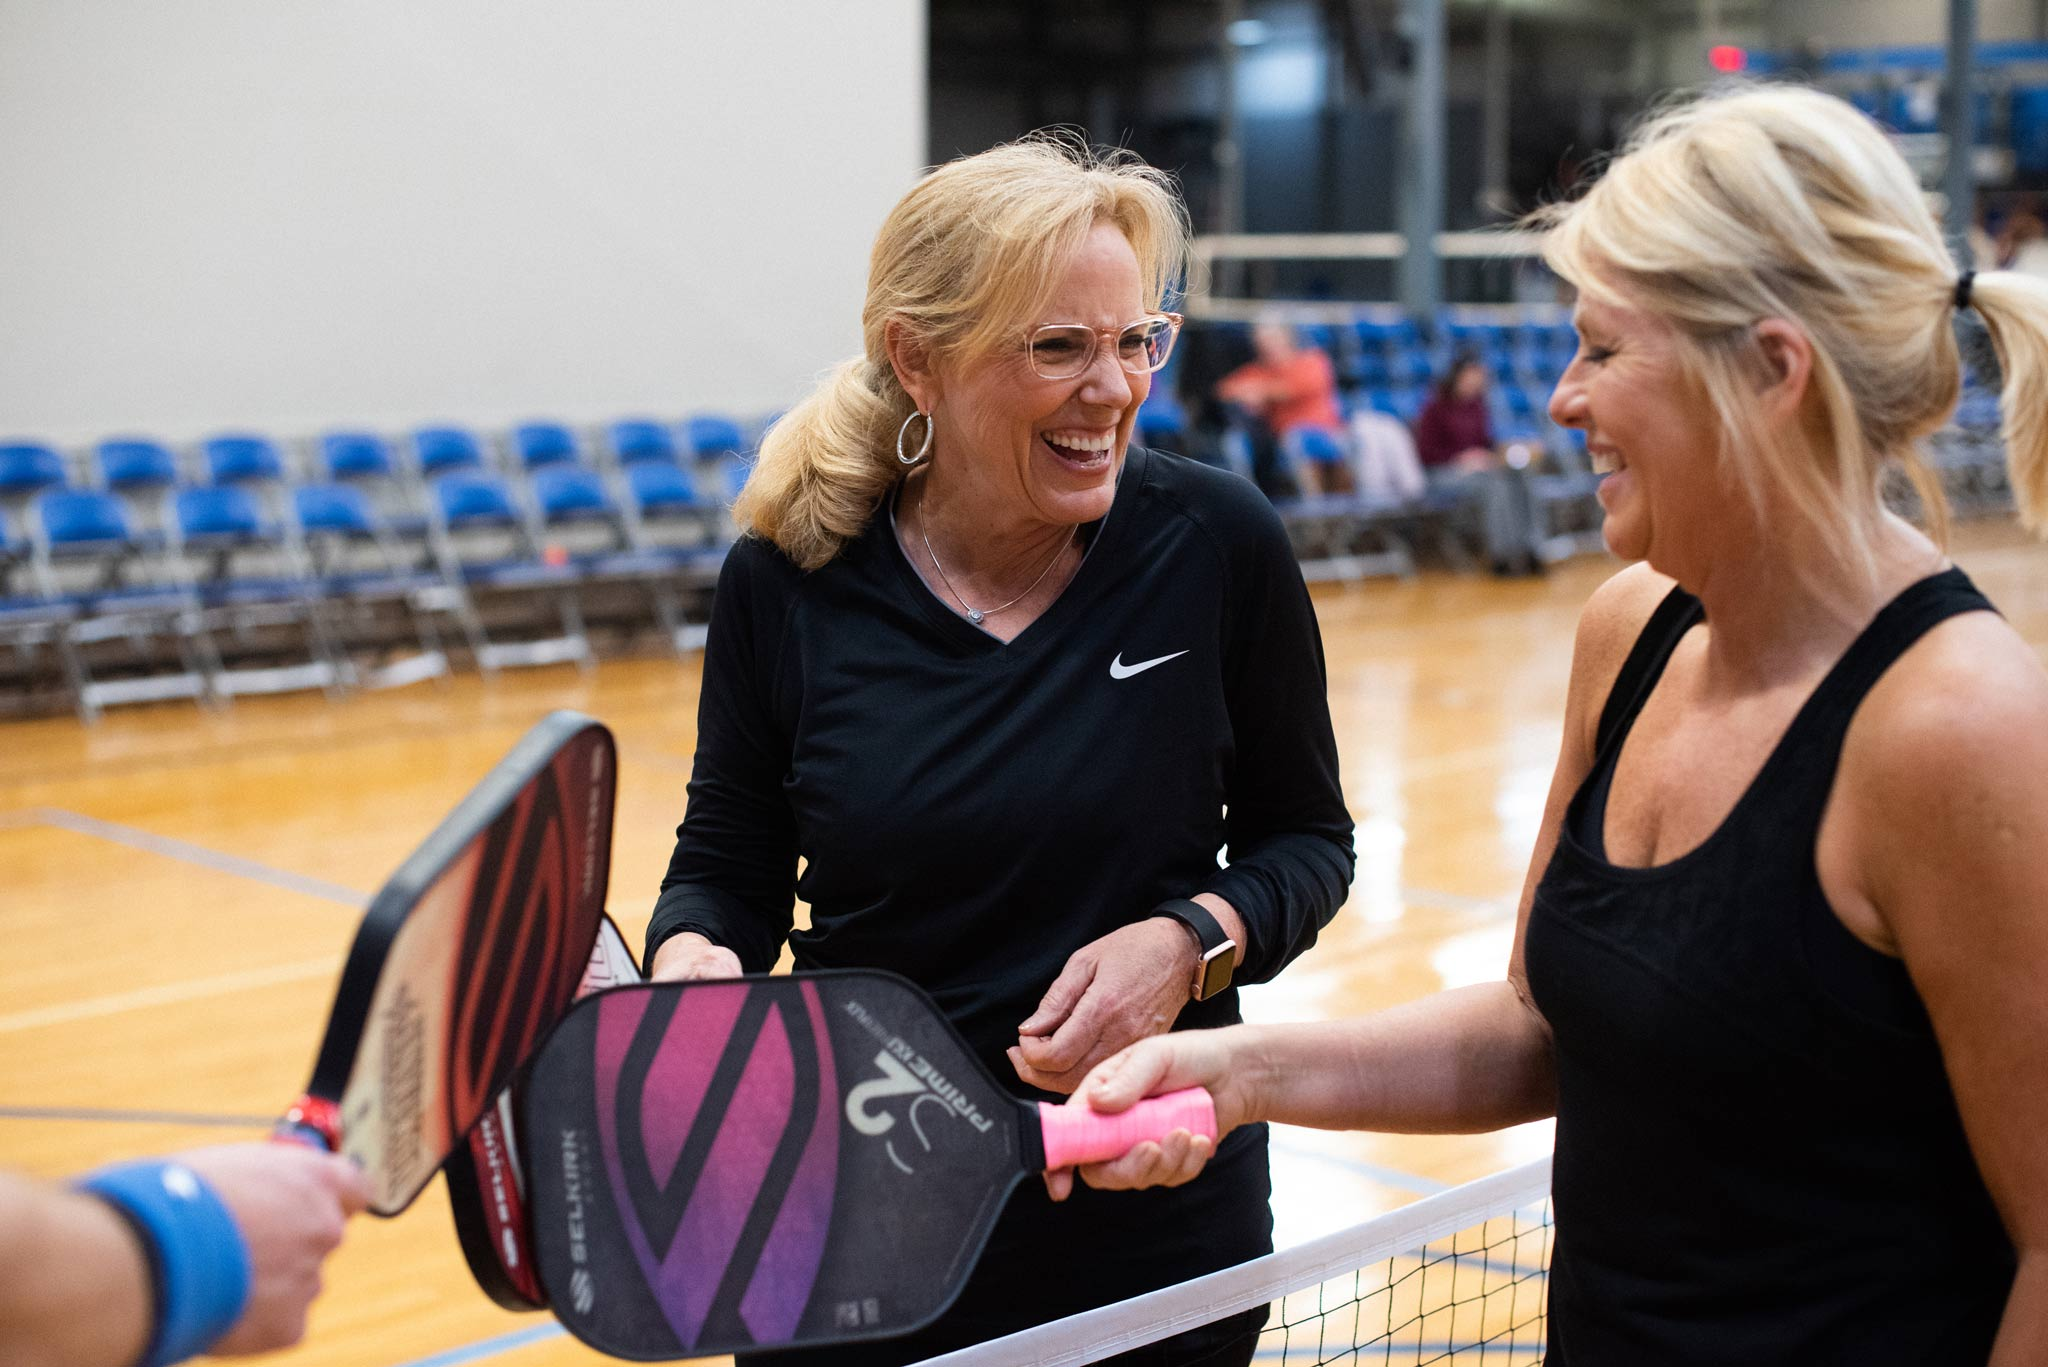 Donna smiles and laughs with a competitor on the other side of the net.